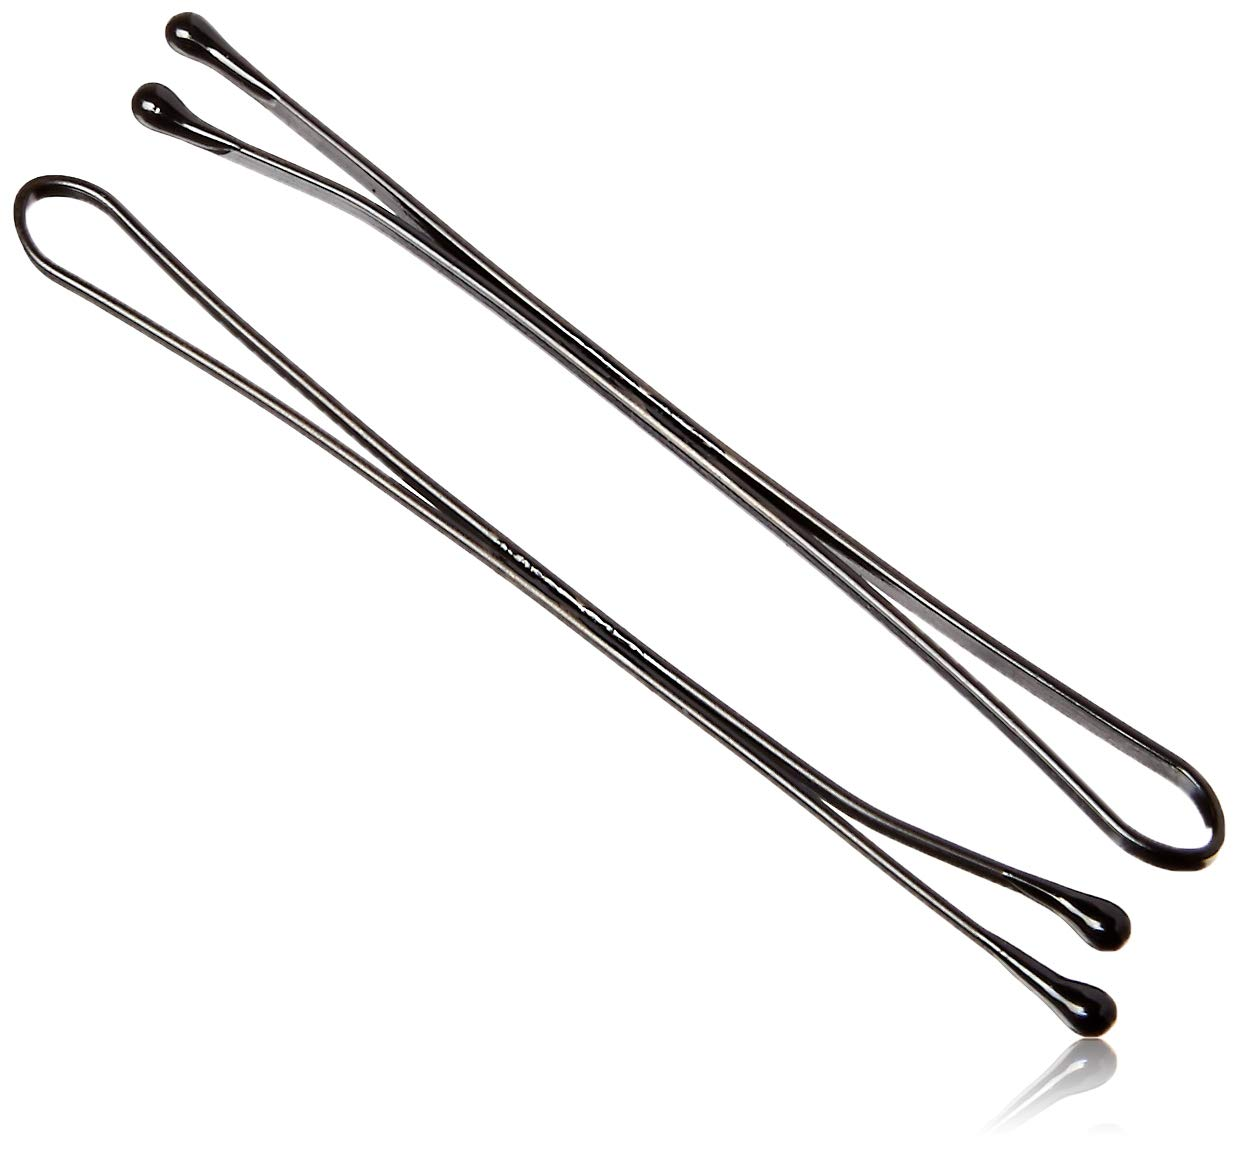 "Kleravitex 2.75"" Jumbo Bobby Hair Pins Black Tipped Flat Style. Perfect For Rollers - 100 pieces Tub Made in USA"